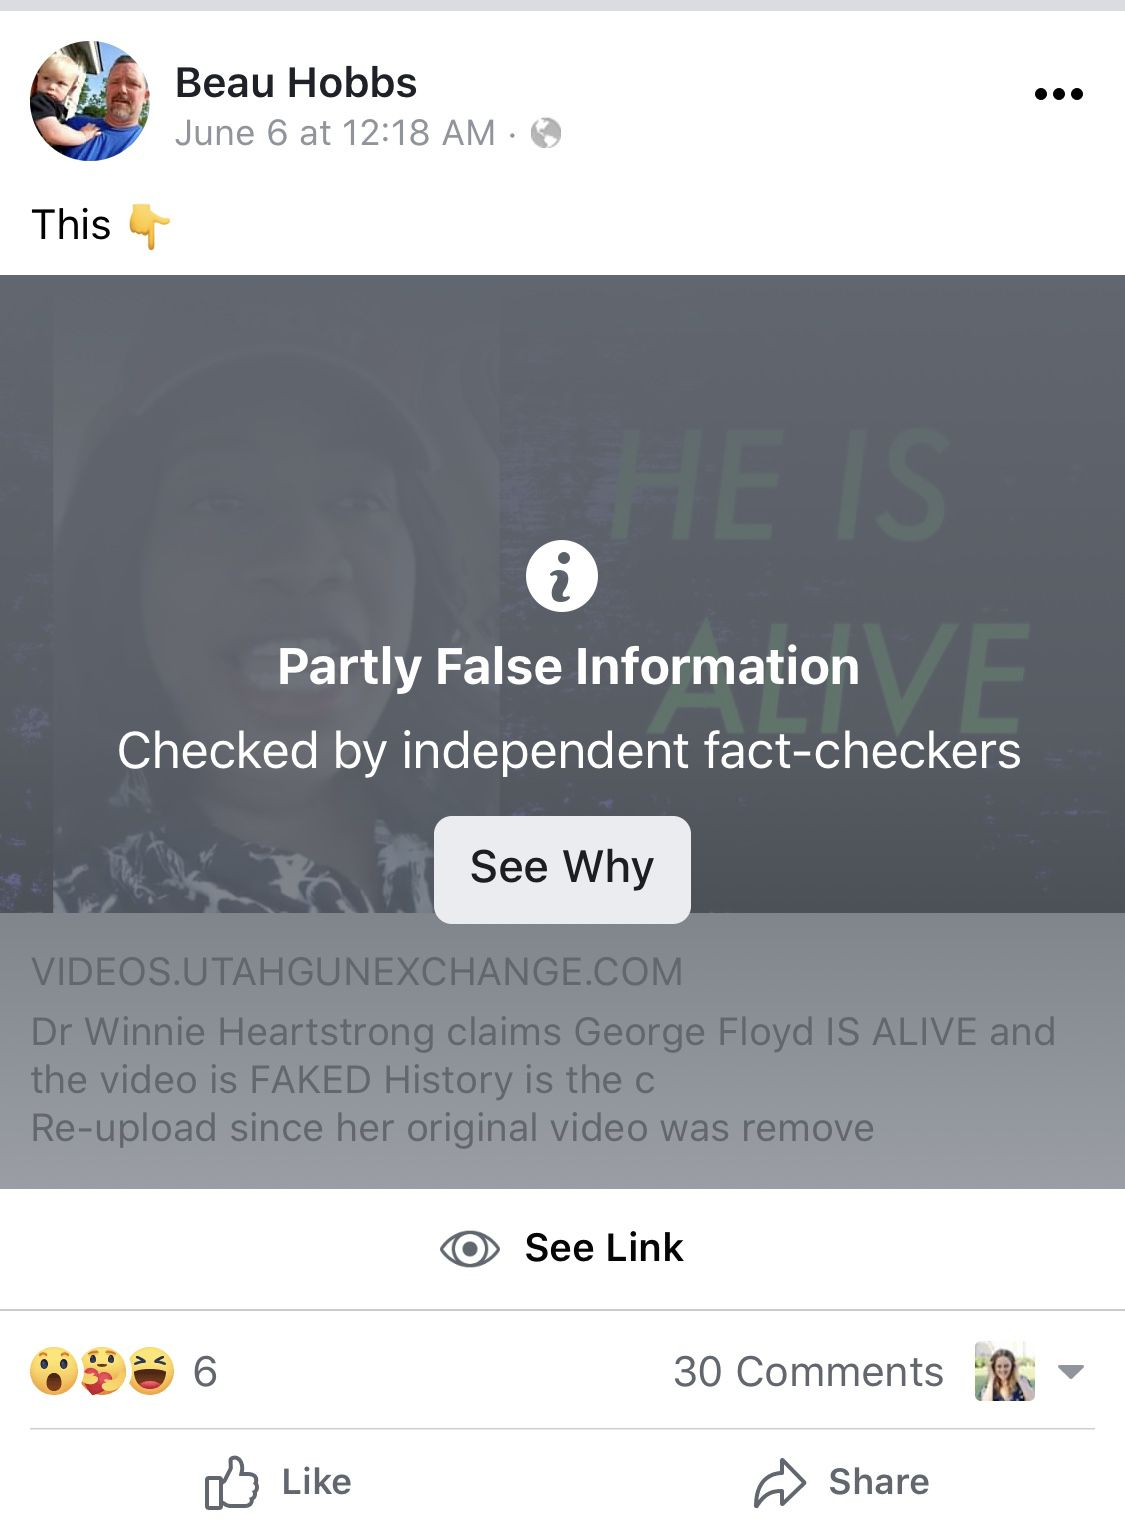 Screenshots from Beau Hobb's Facebook, showing a censored video claiming George Floyd is alive and the video is faked